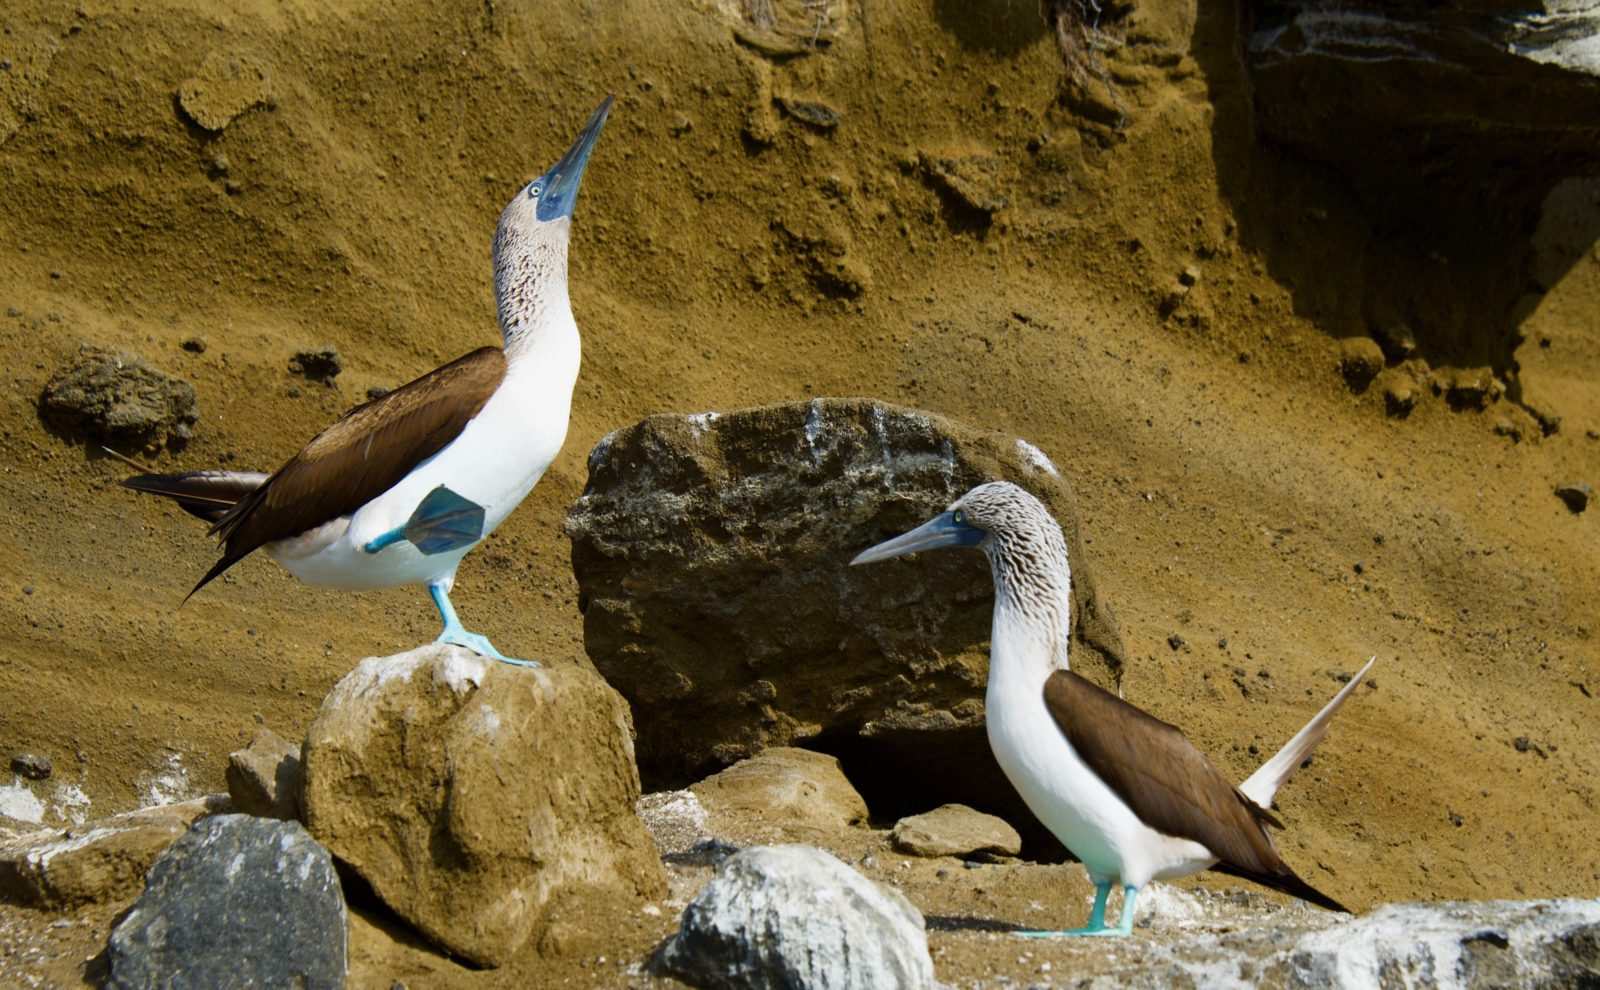 Mating dance of the Blue Footed Boobie